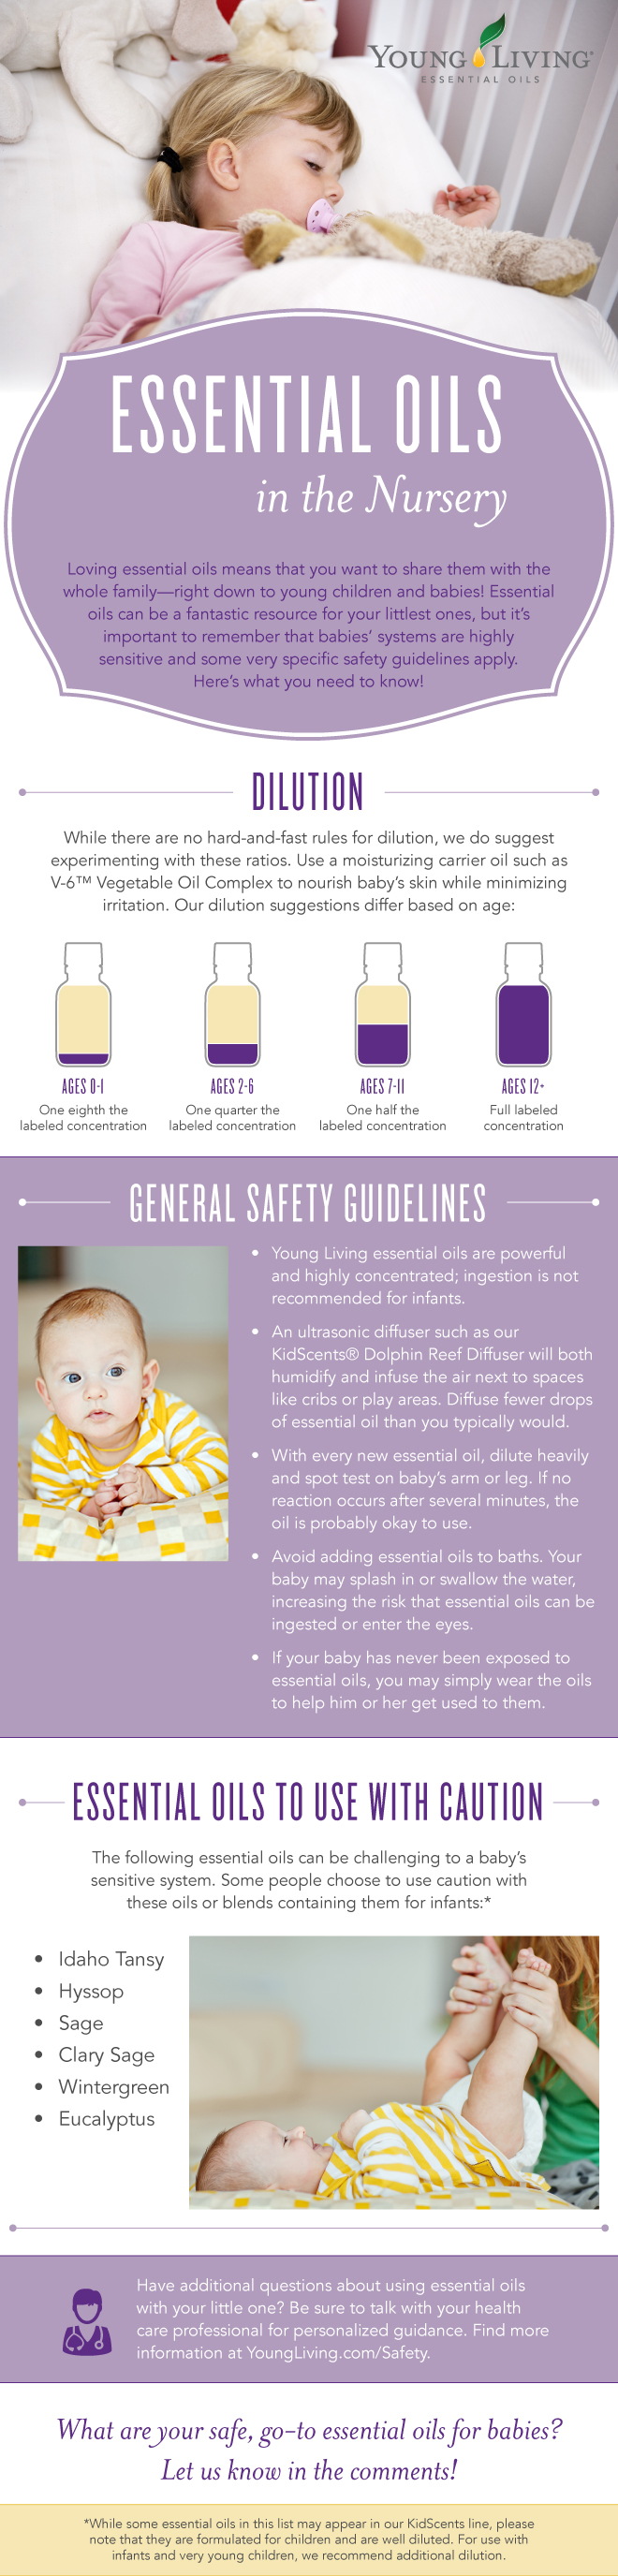 Essential Oils for Babies | Young Living Essential Oils